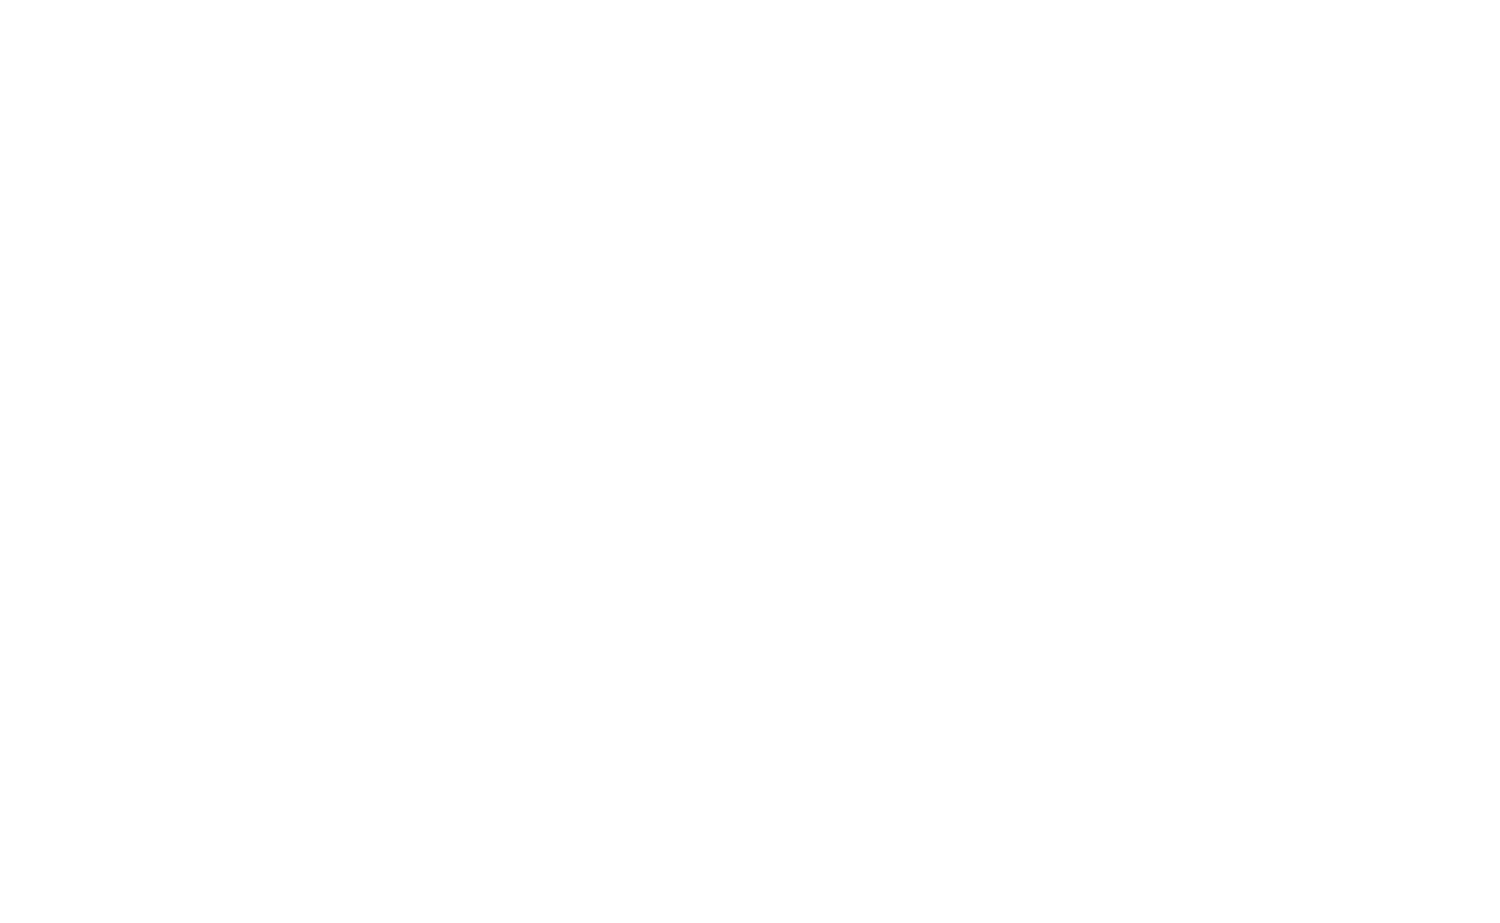 The New Jersey Wilds